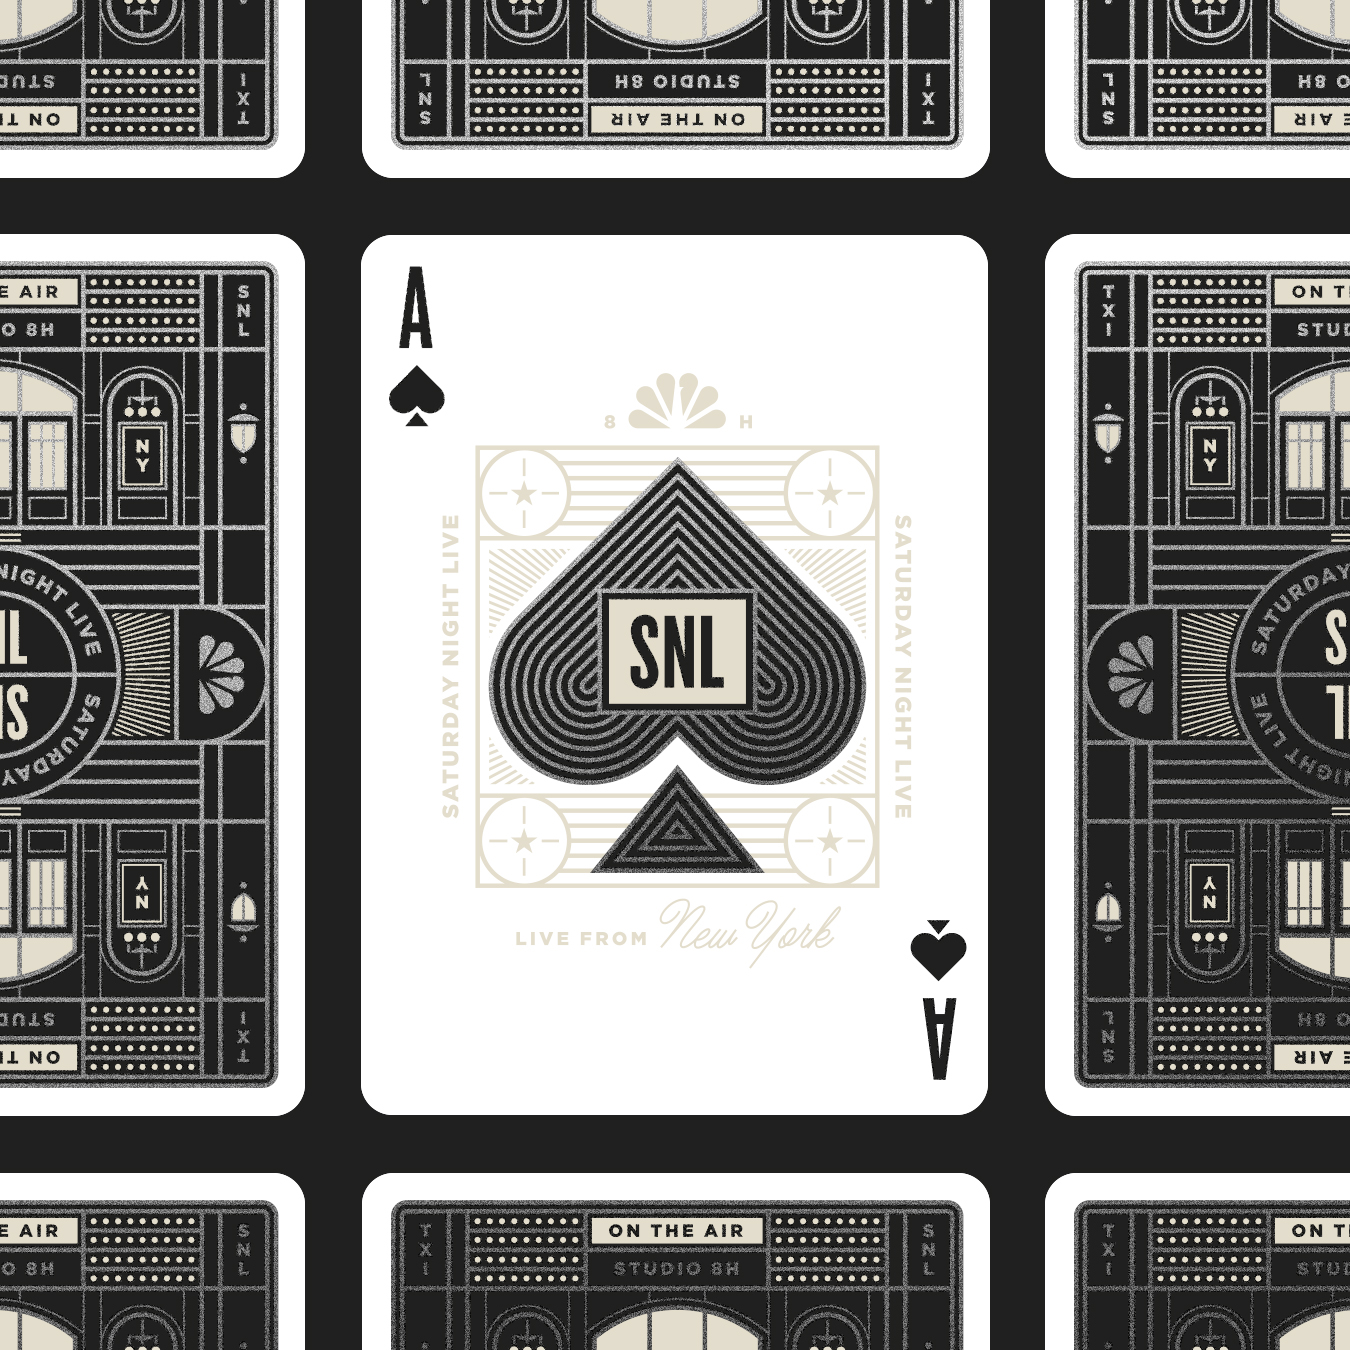 Saturday Night Live Ace of Spades